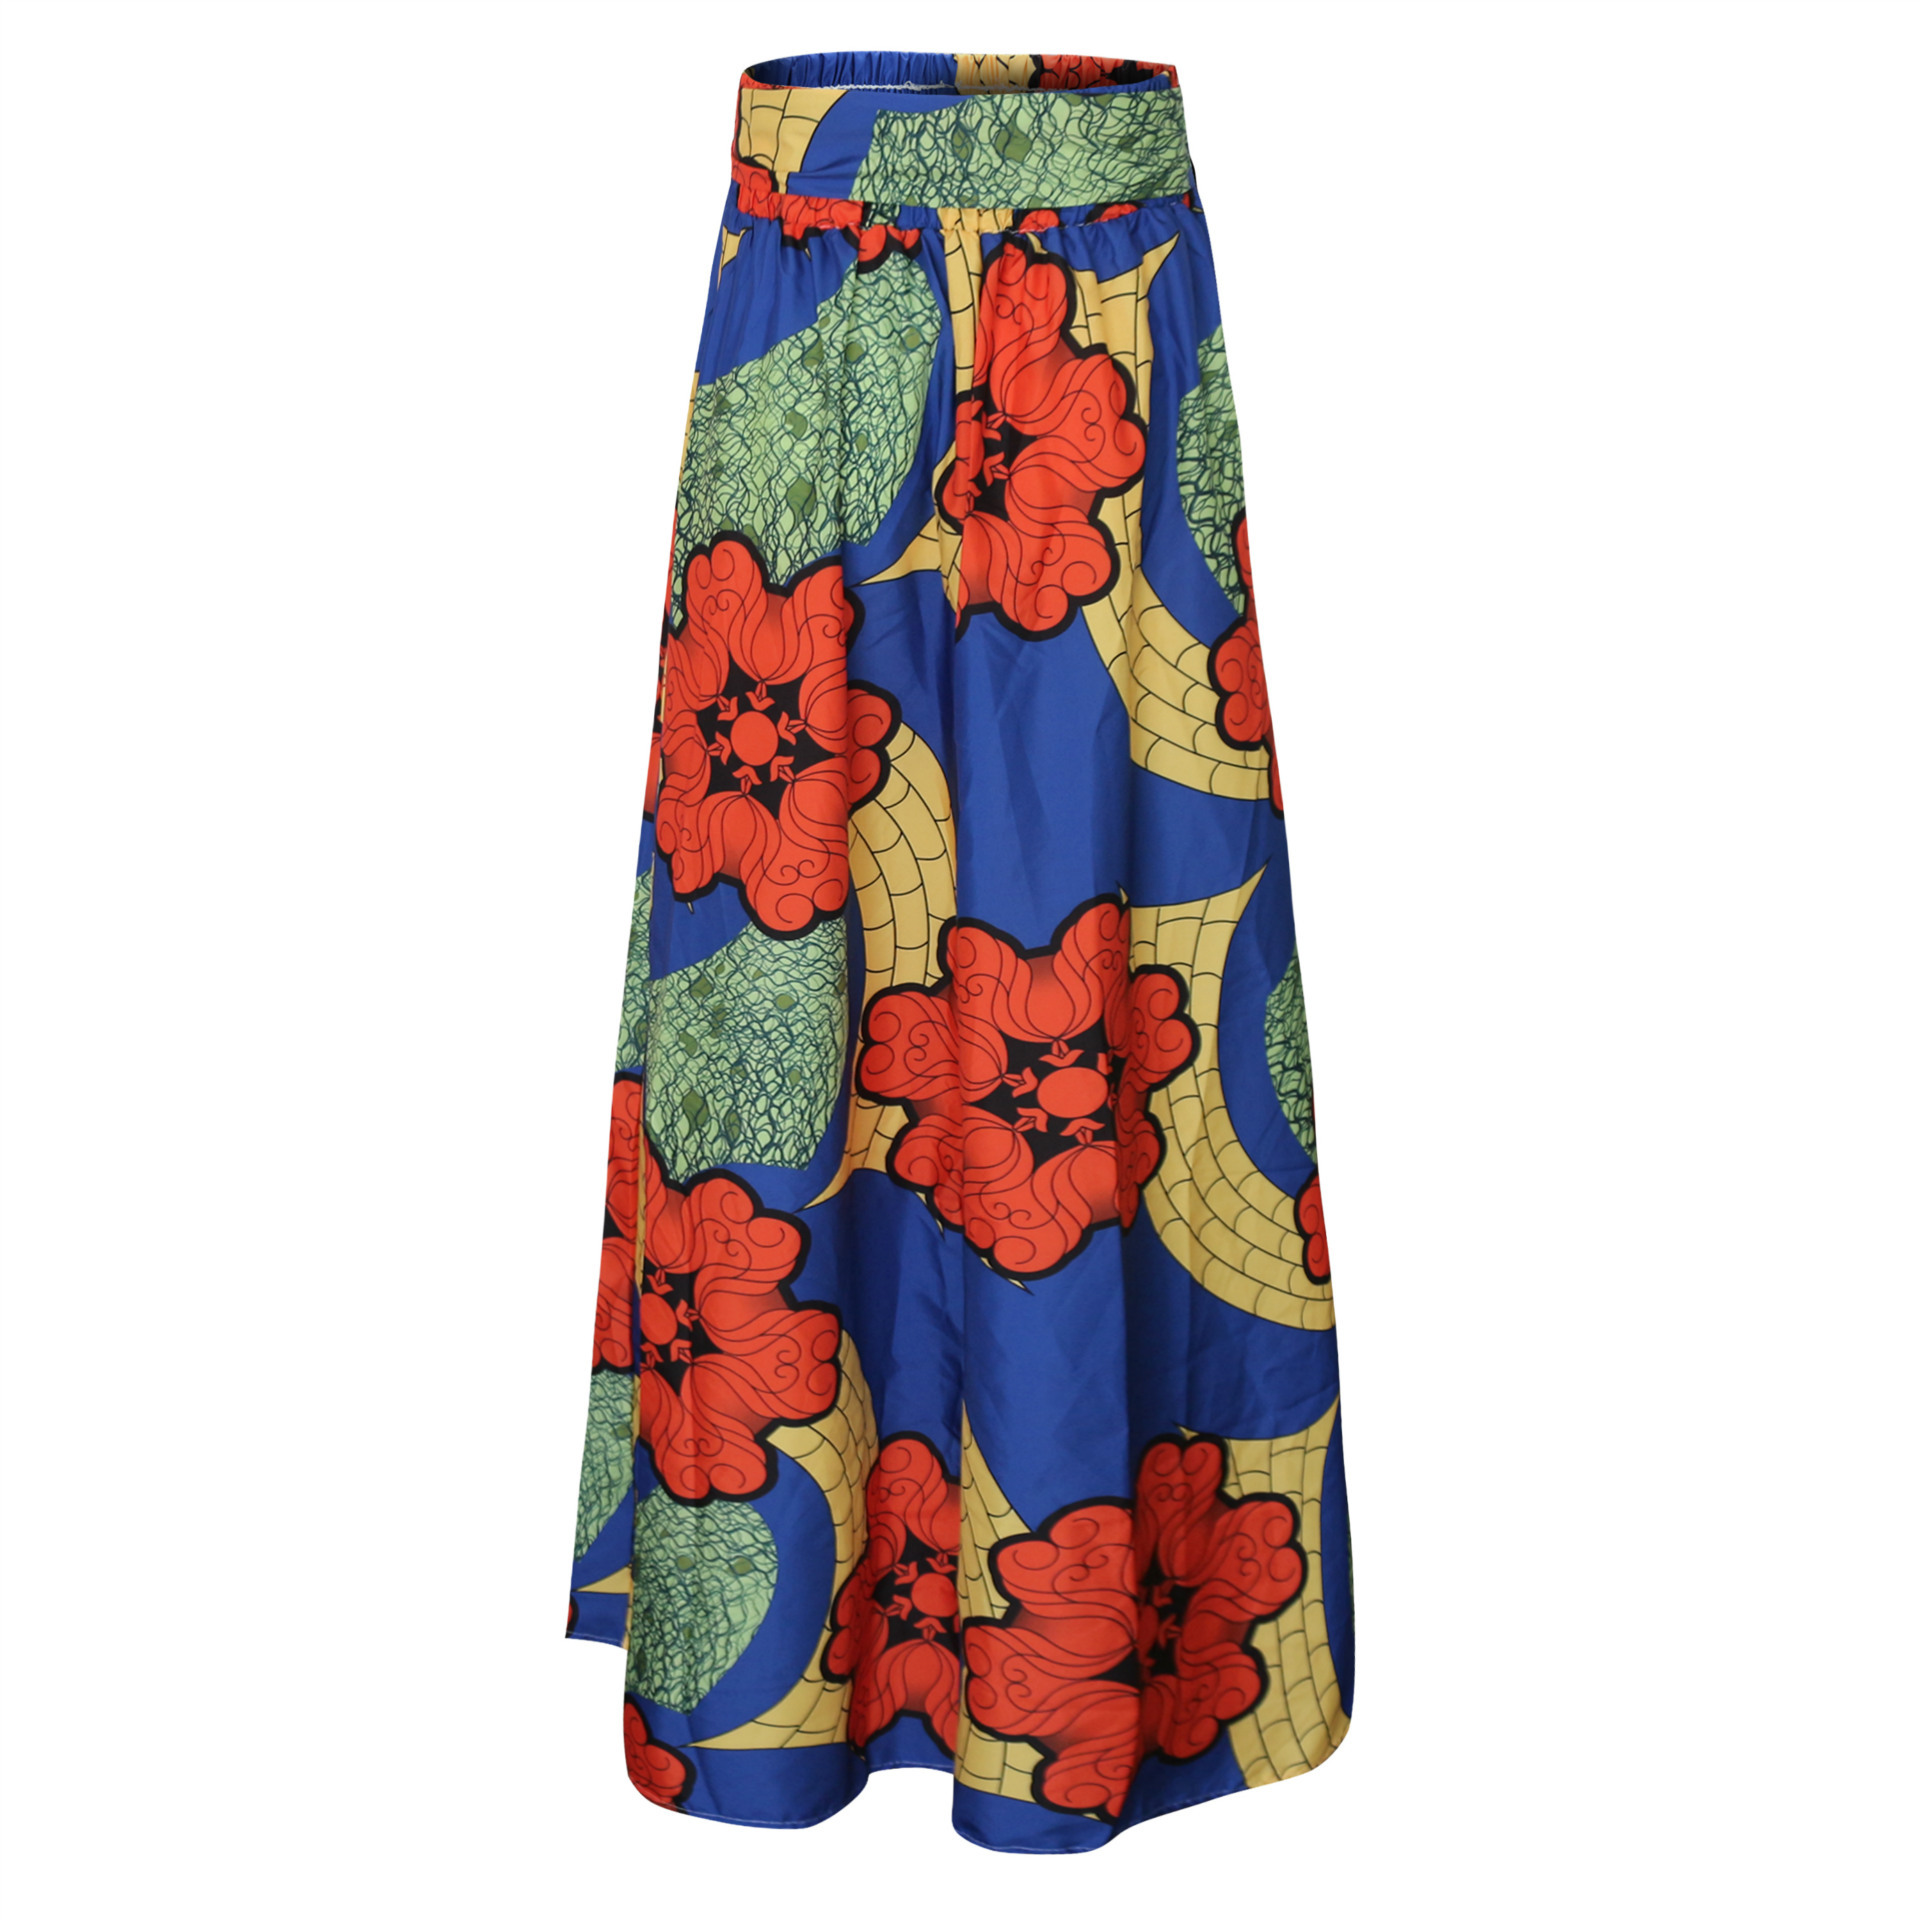 500fab91d9b Plus Size Africa Clothes 5XL Indonesia Ankara Indian African Pattern Print  Women Summer Autumn Skirt Fashion Bandage Long Skirts-in Africa Clothing  from ...